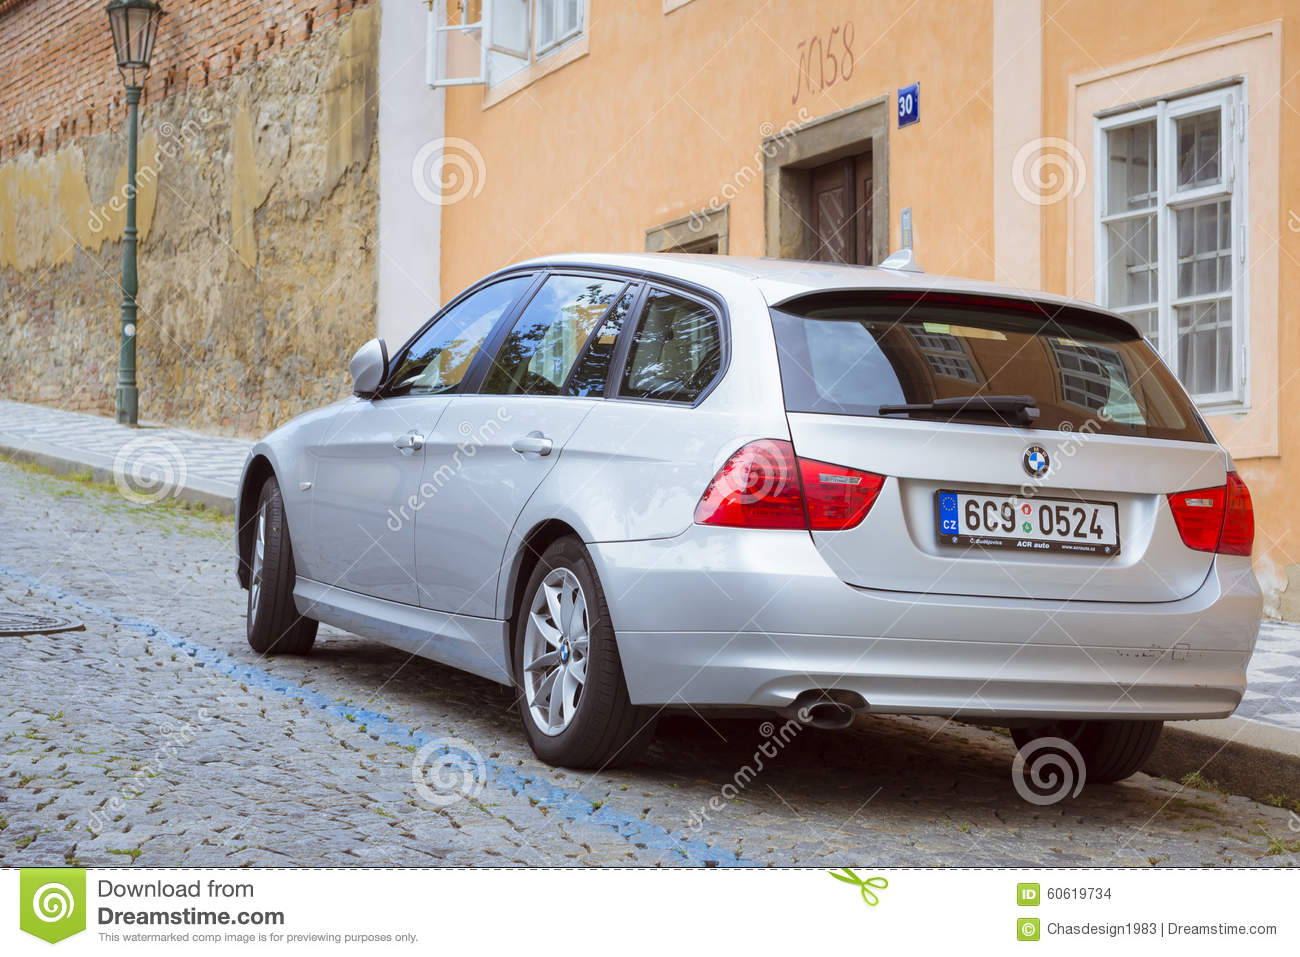 The Car Bmw Station Wagon On The Street Mala Strana Prague S Editorial Stock Image Image Of House August 60619734